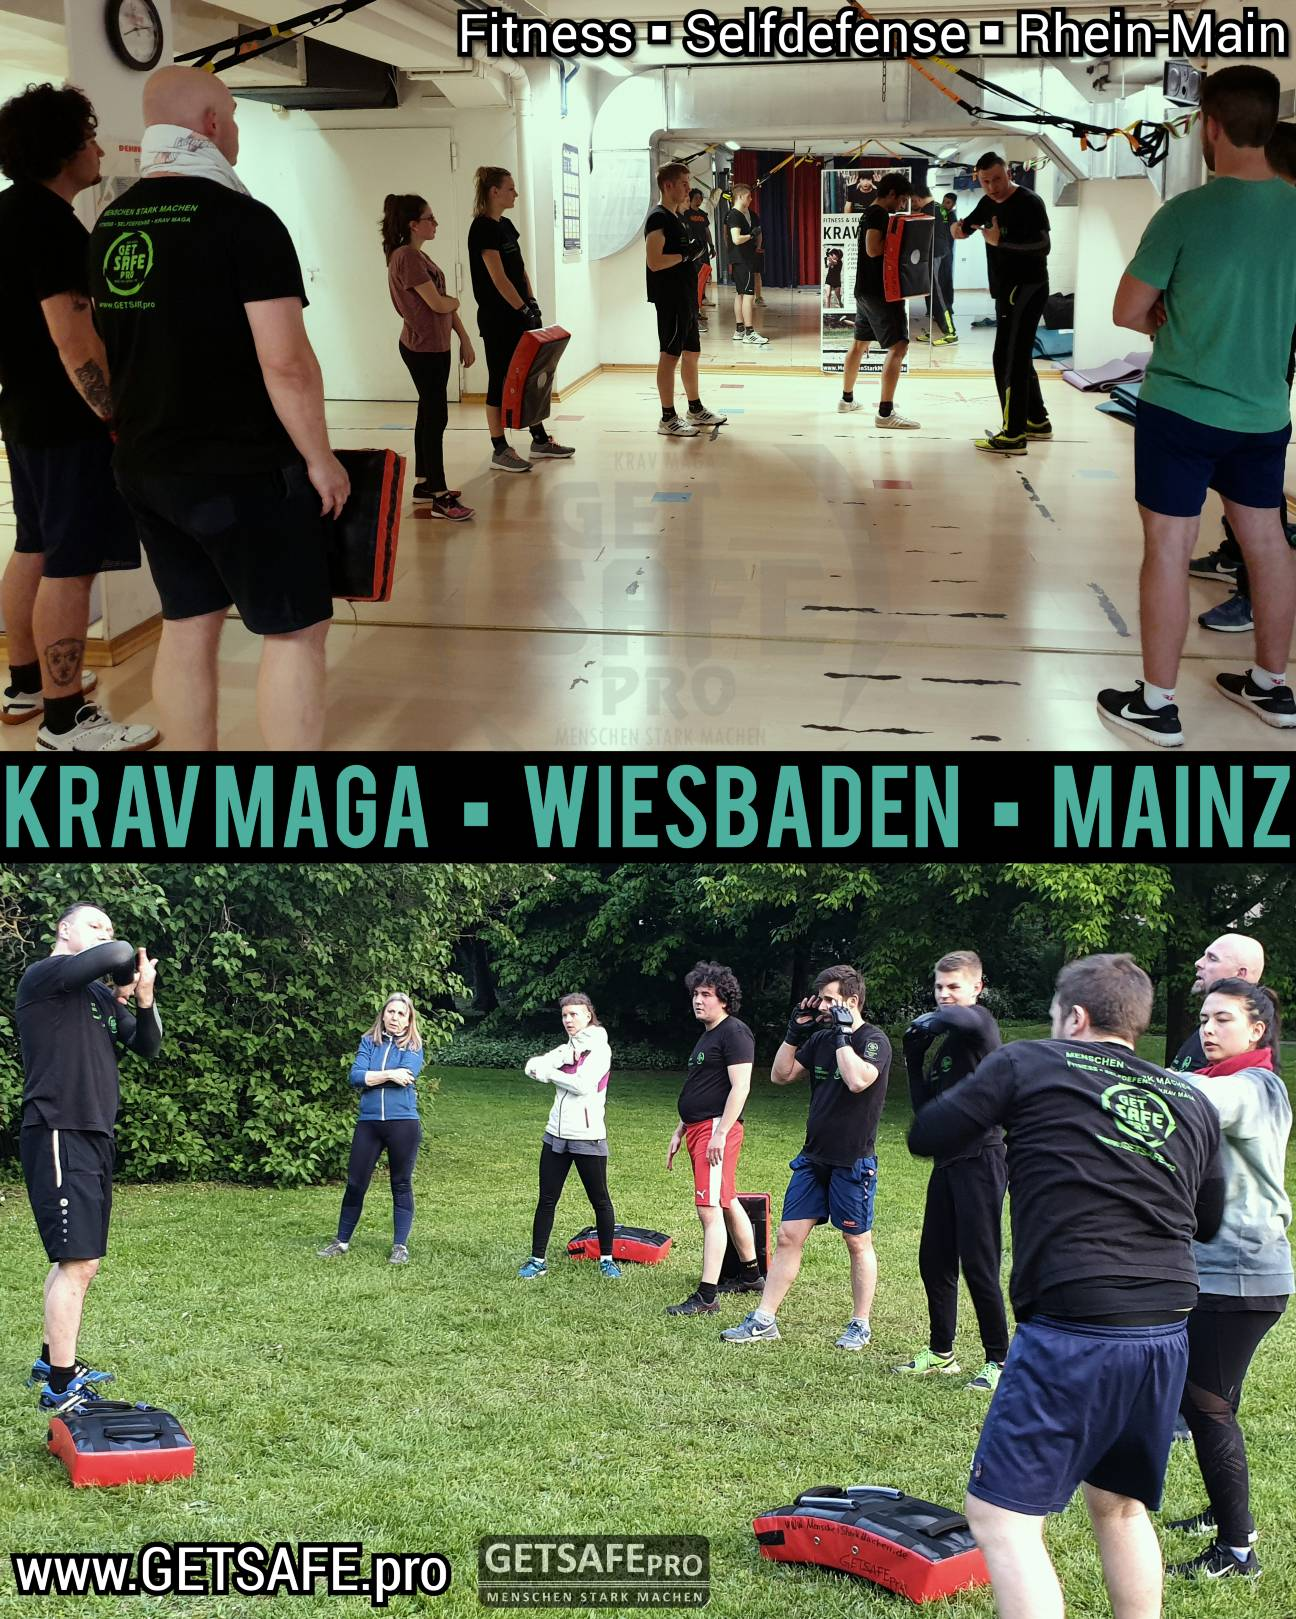 GETSAFEpro Krav Maga Indoor Training Outdoor Selbstverteidigung Fitness (4)